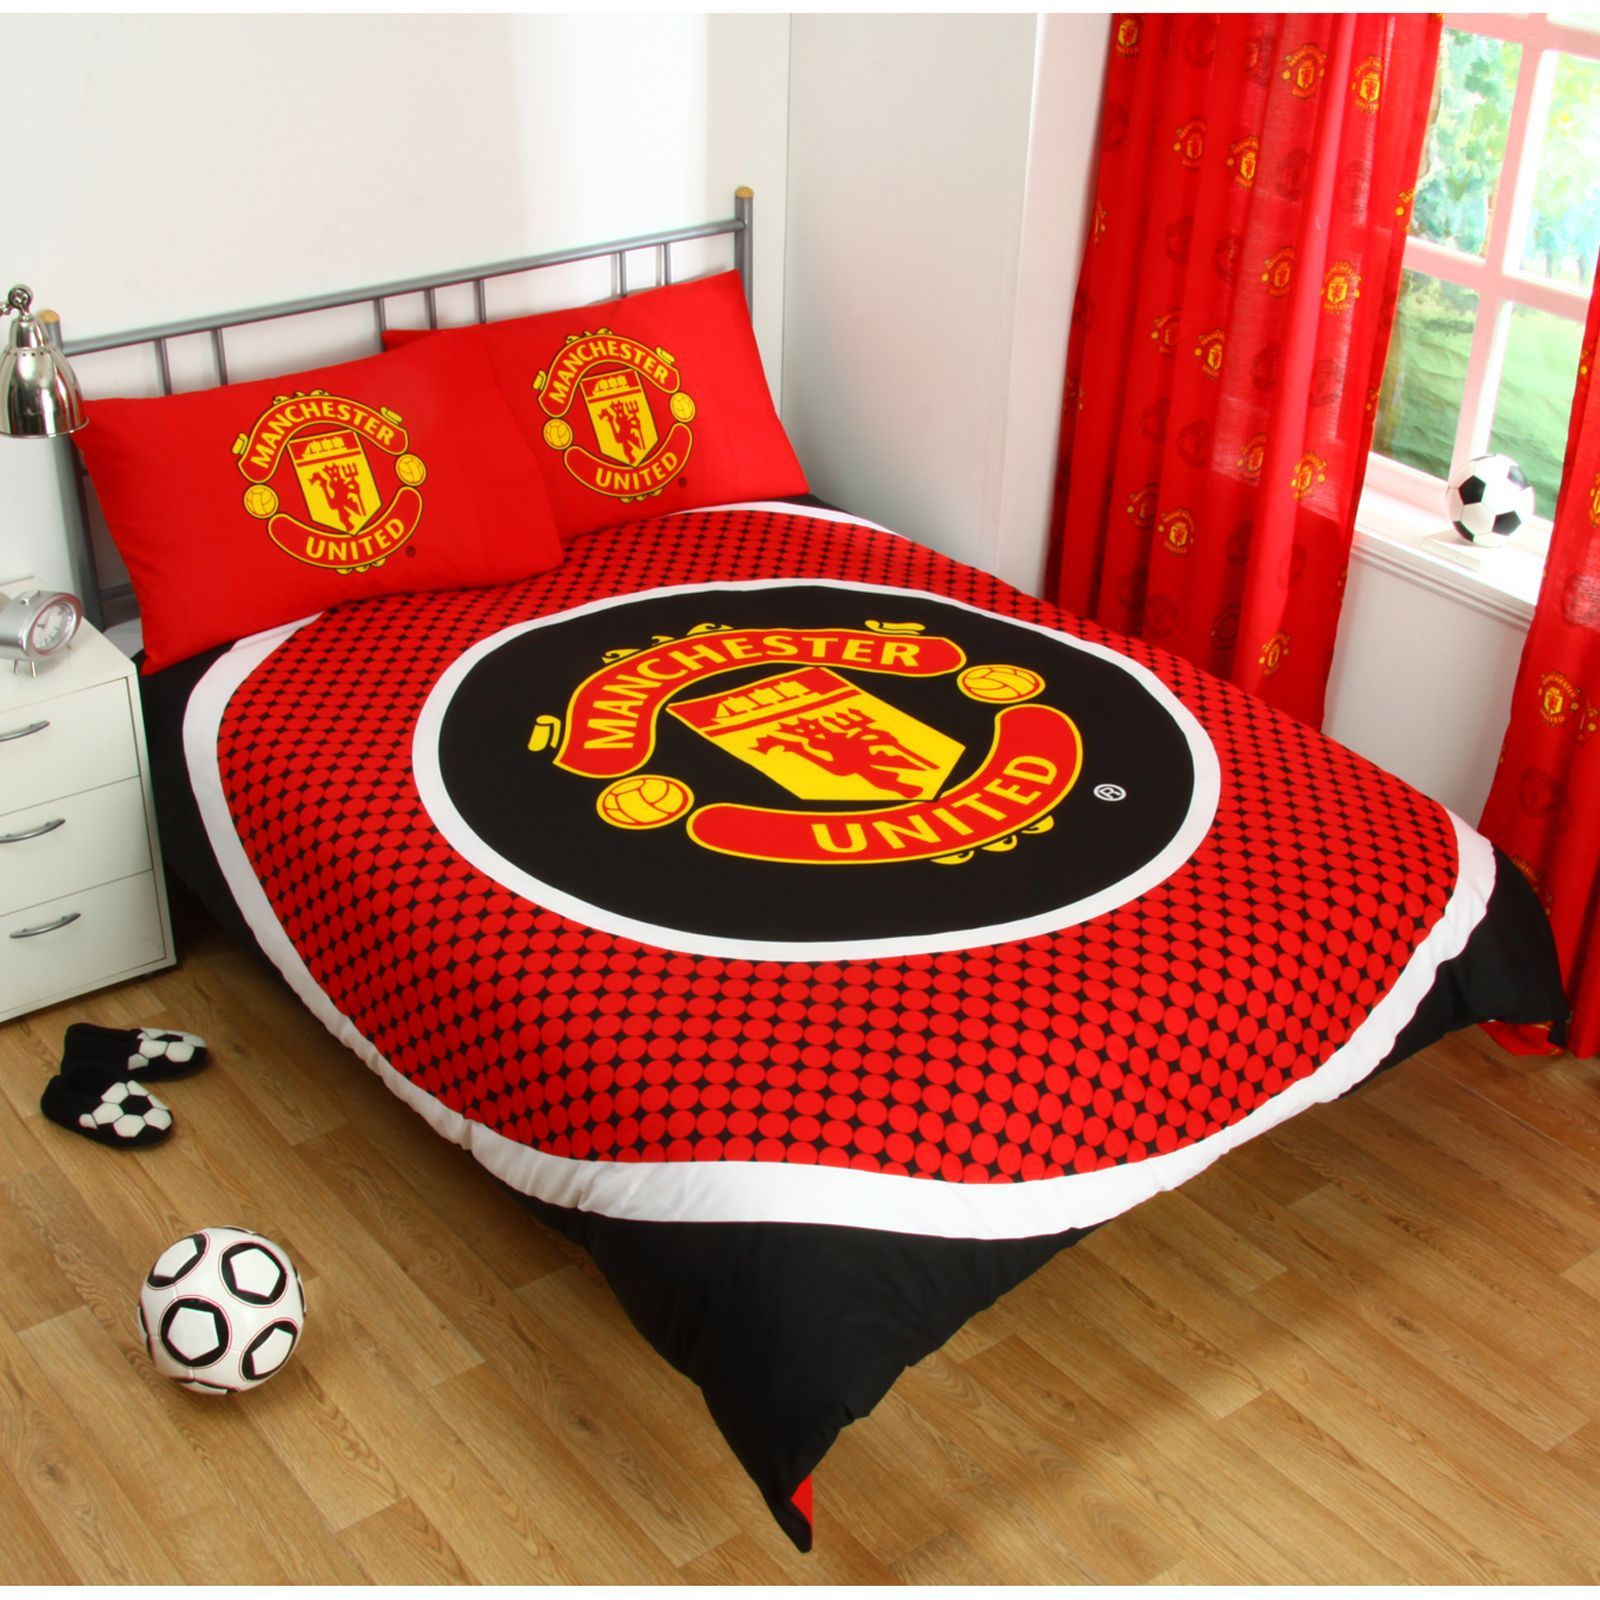 Man Utd Bedroom Wallpaper United Bedroom Set Childrensfurnitureworld United Bedroom England